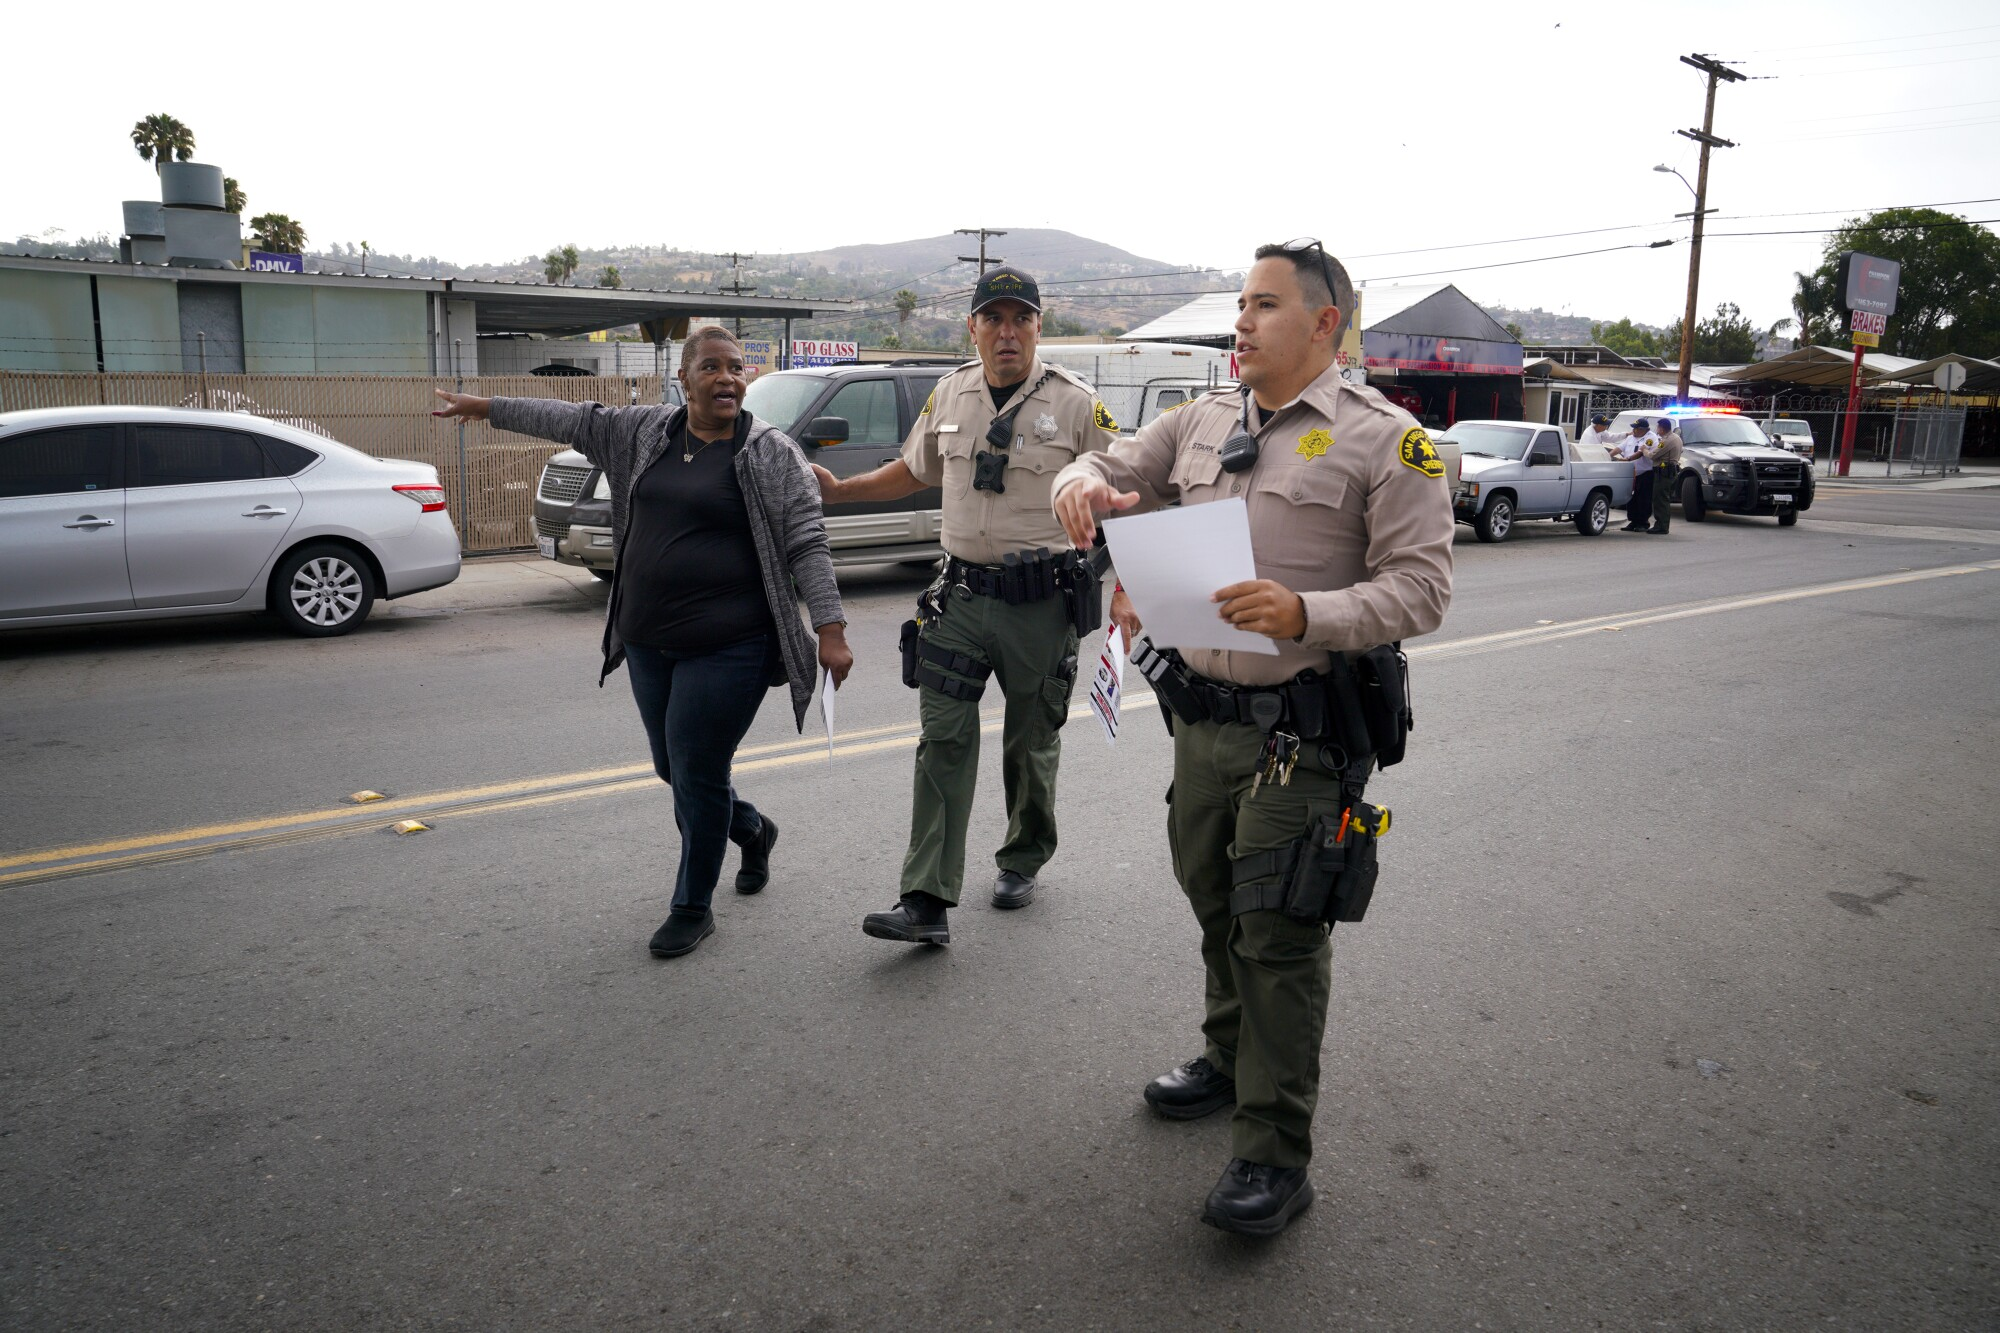 San Diego Sheriff's deputies and volunteers walked the nearby neighborhood in Spring Valley distributing a flyer